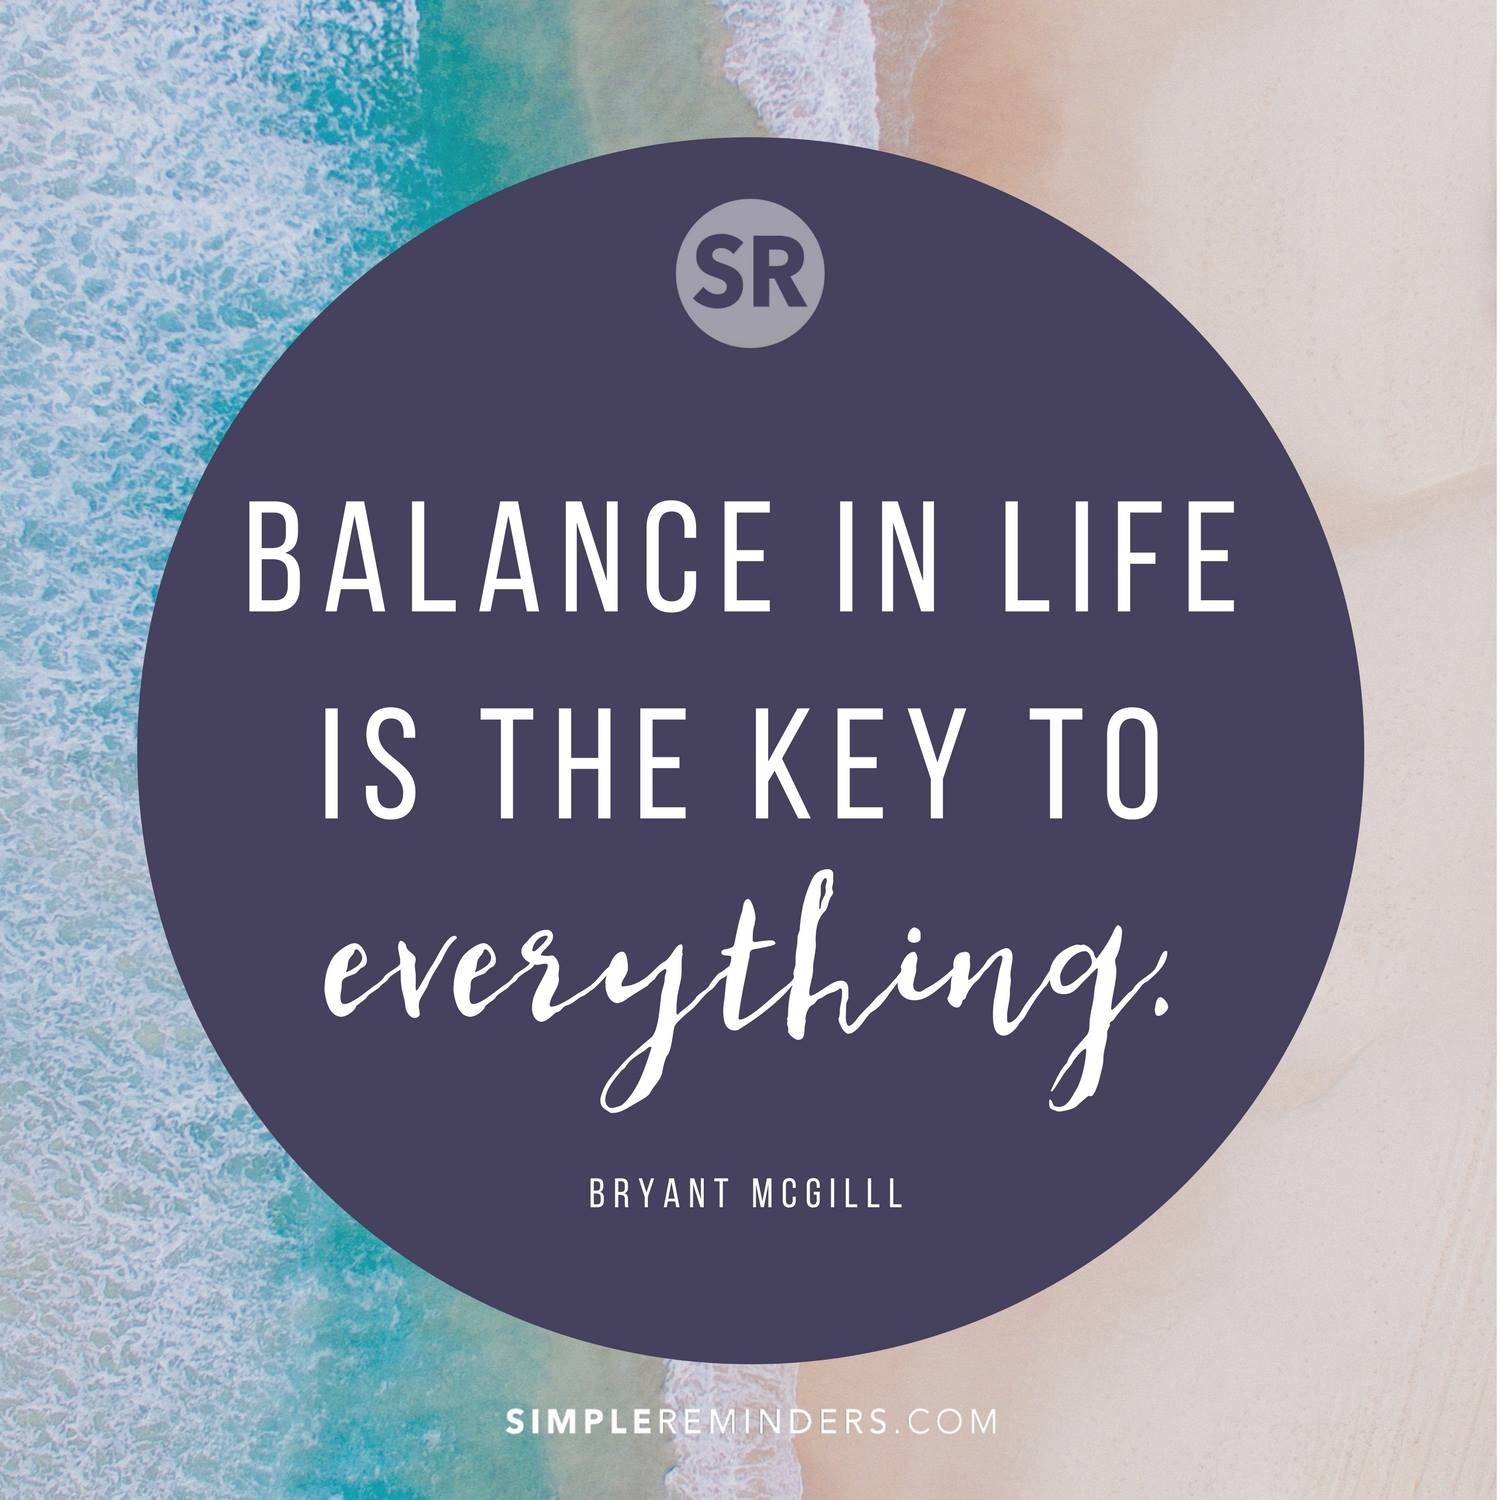 Balance In Life Is The Key To Everything Bryant Mcgill Wisdom Quotes Life Balance Quotes Wisdom Quotes Life